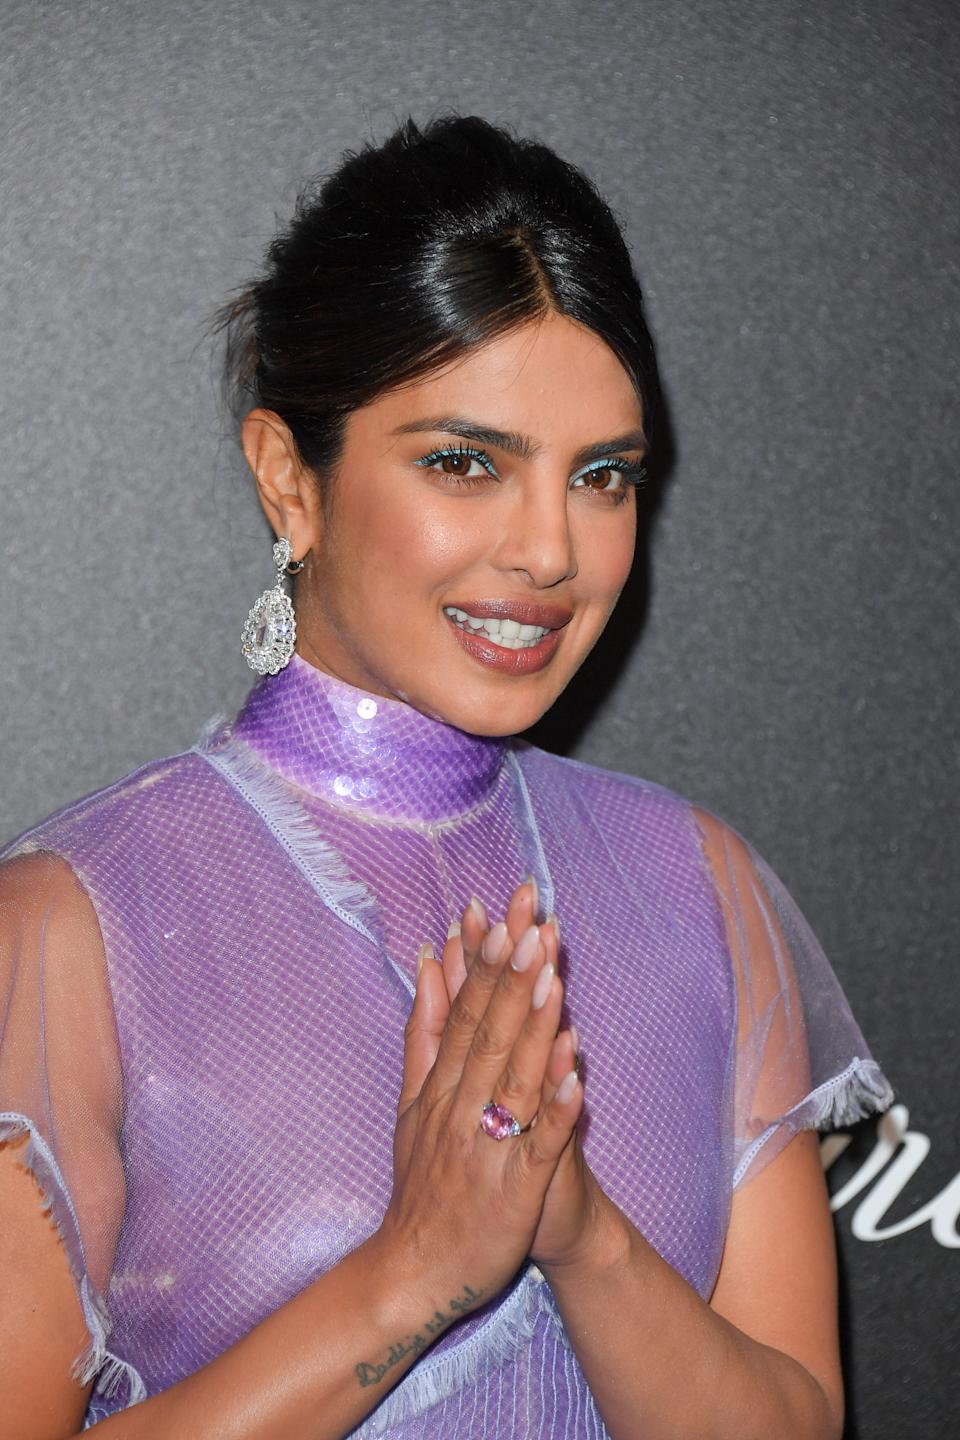 CANNES, FRANCE - MAY 17: Priyanka Chopra attends the Chopard Party during the 72nd annual Cannes Film Festival on May 17, 2019 in Cannes, France. (Photo by George Pimentel/WireImage)